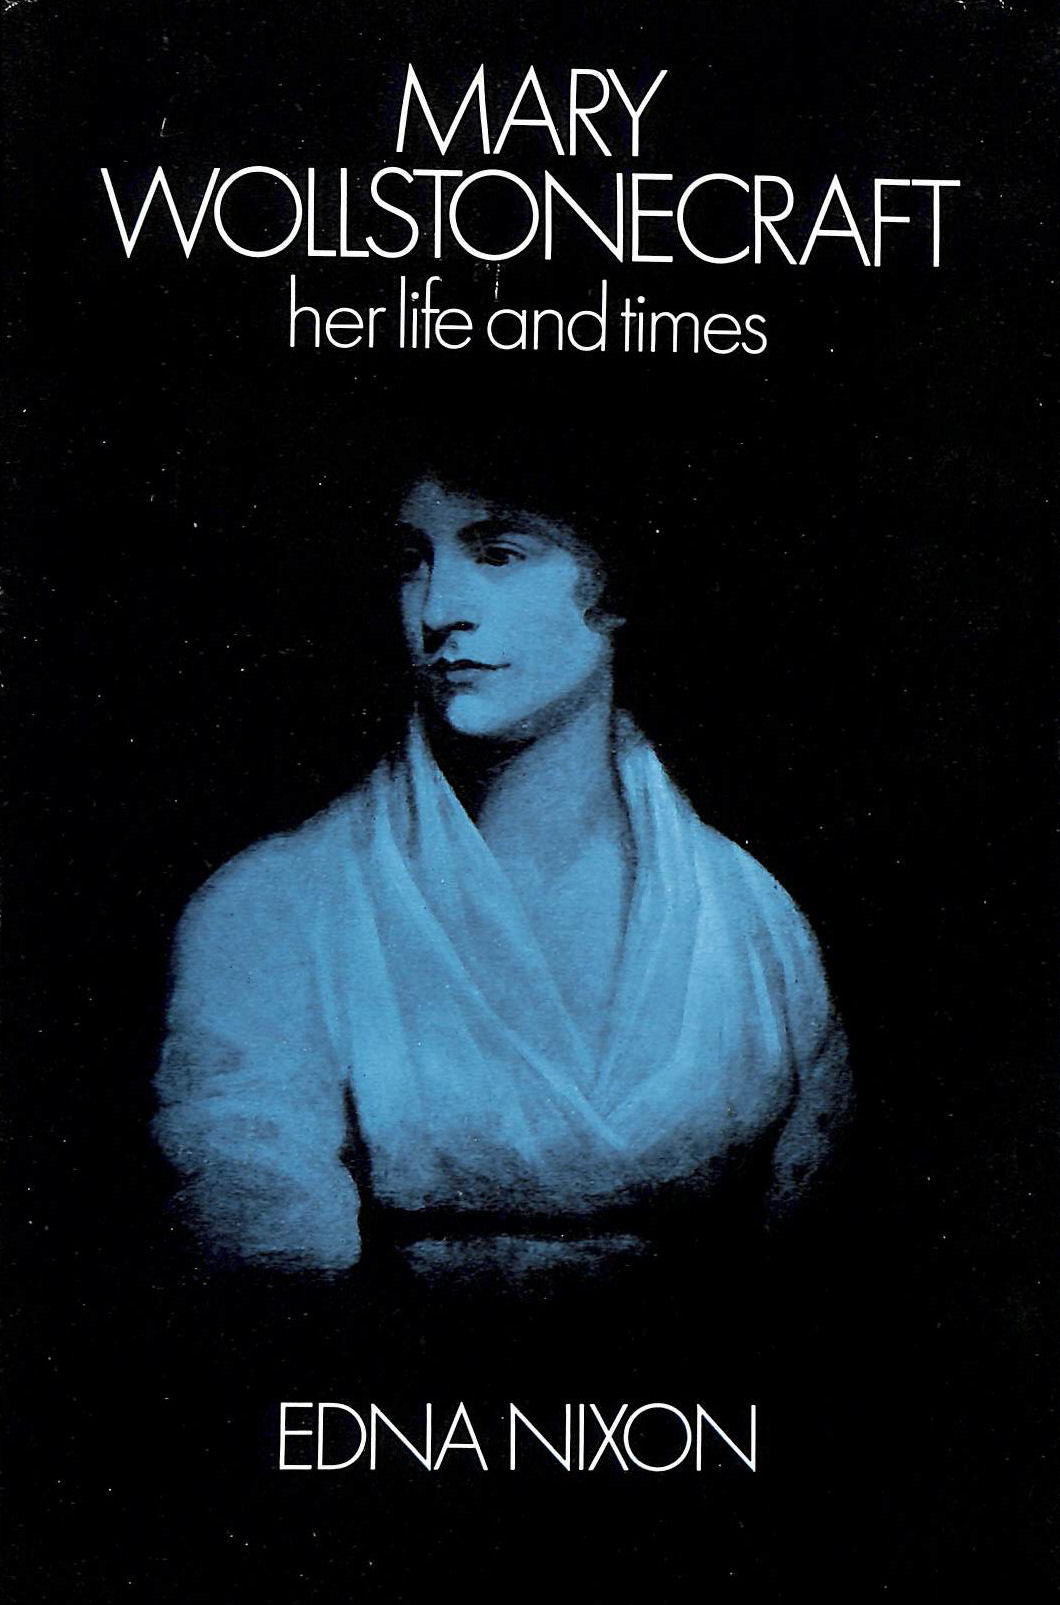 Image for Mary Wollstonecraft: Her Life And Times